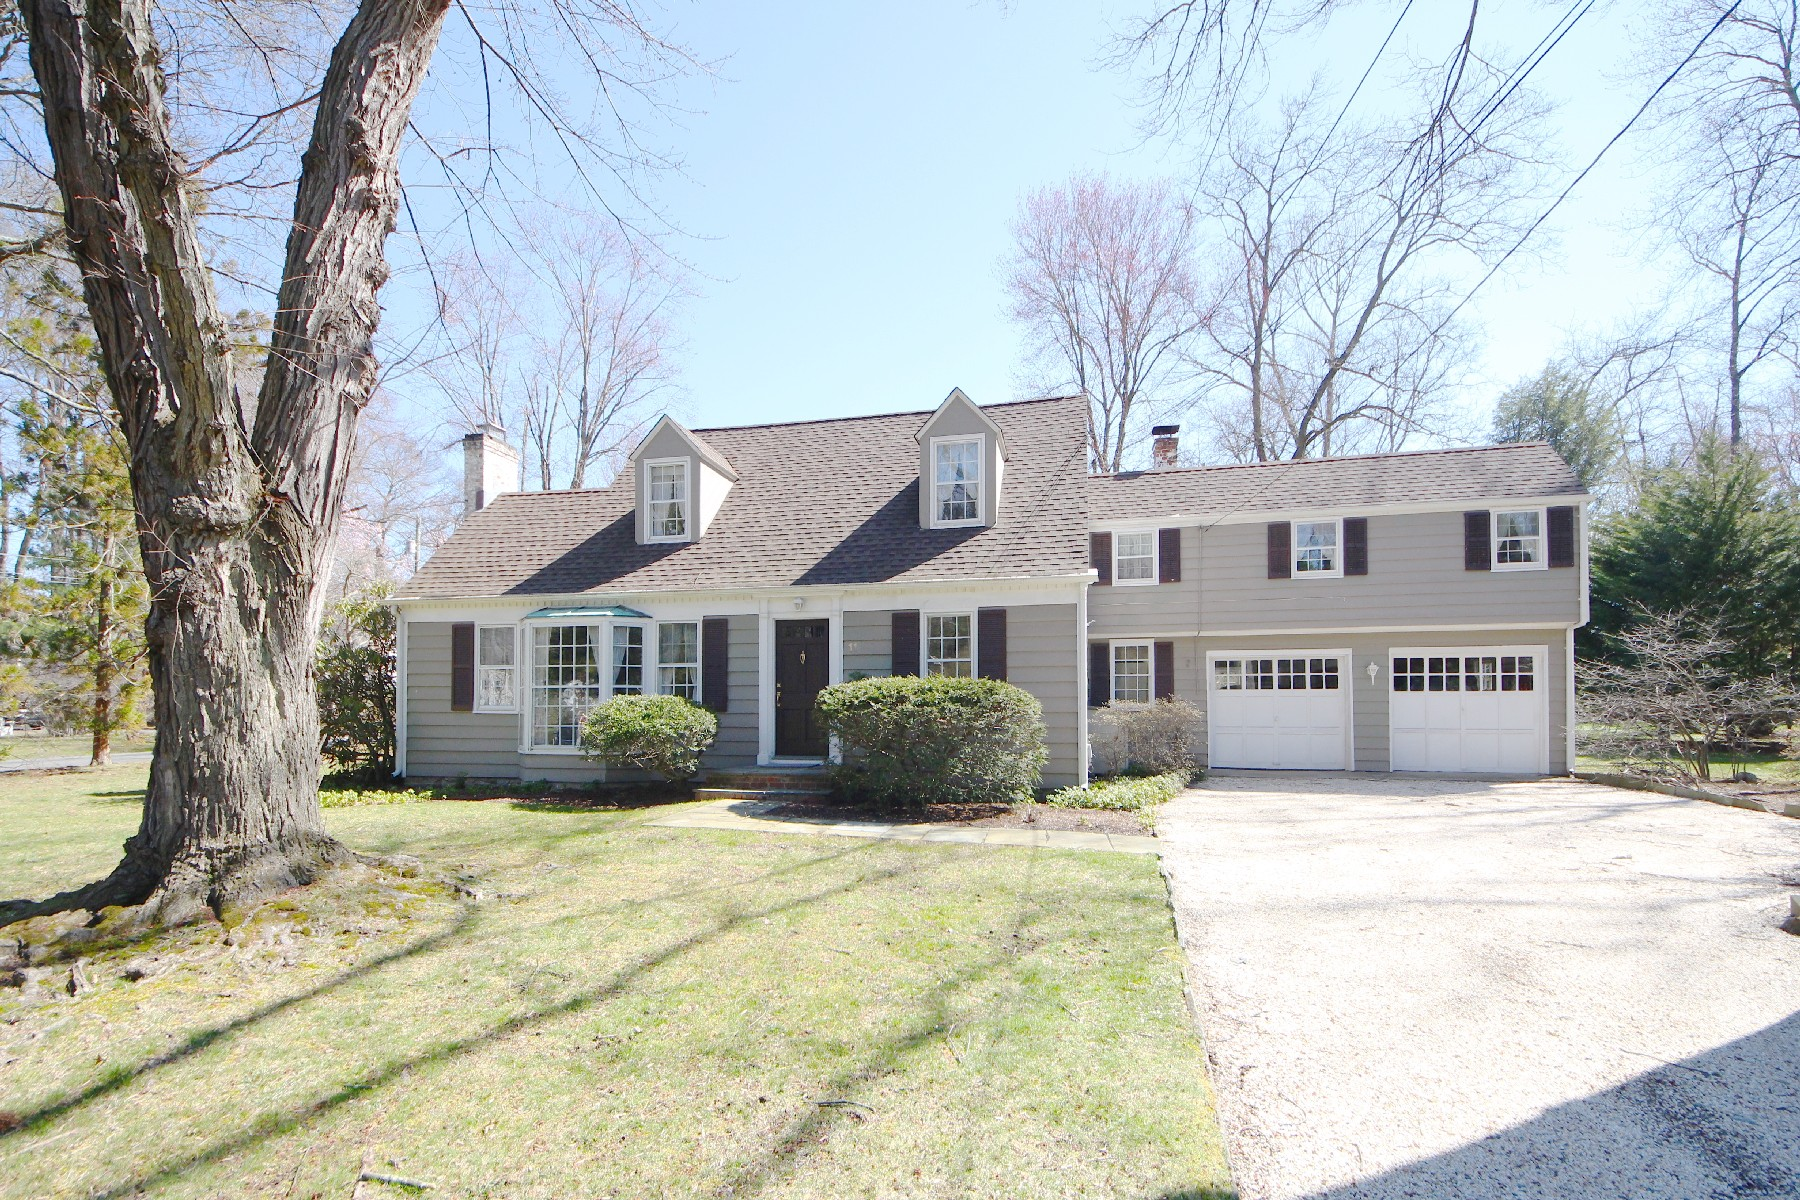 Single Family Home for Sale at Quintessential Cape Cod Home 11 Rocaton Road Darien, Connecticut, 06820 United States